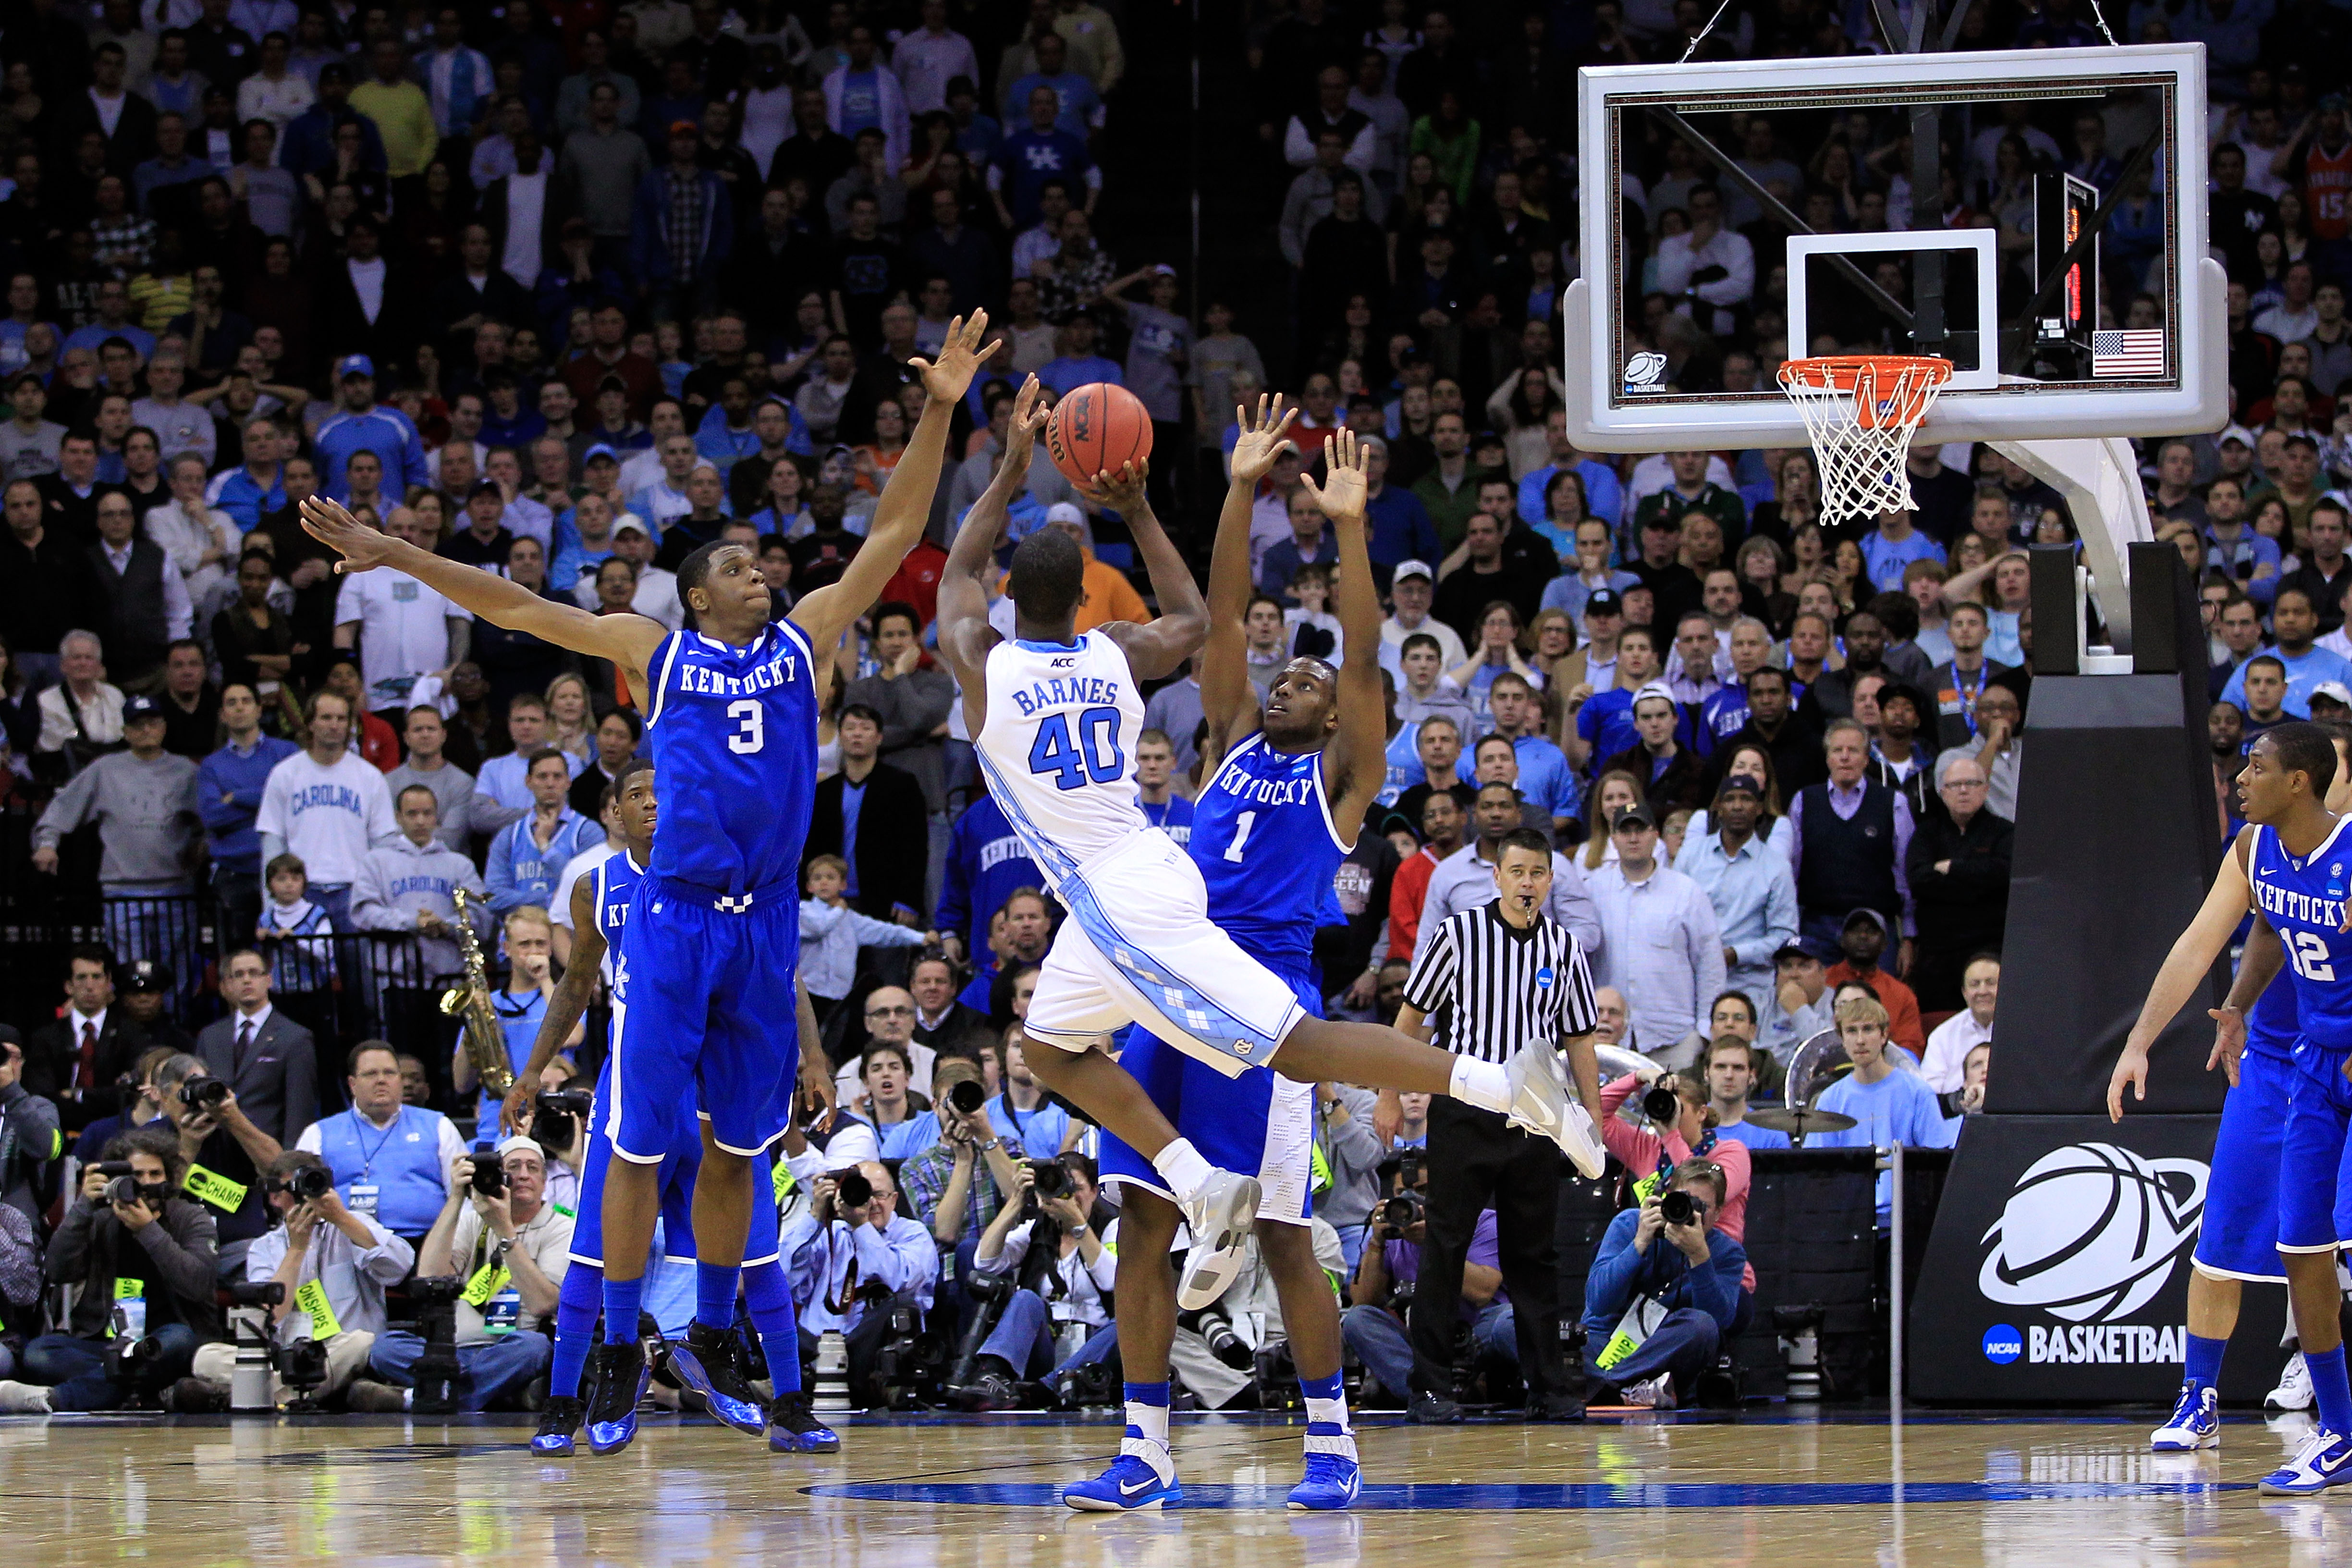 NEWARK, NJ - MARCH 27:  Harrison Barnes #40 of the North Carolina Tar Heels takes a shot against Darius Miller #1 of the Kentucky Wildcats during the east regional final of the 2011 NCAA men's basketball tournament at Prudential Center on March 27, 2011 i